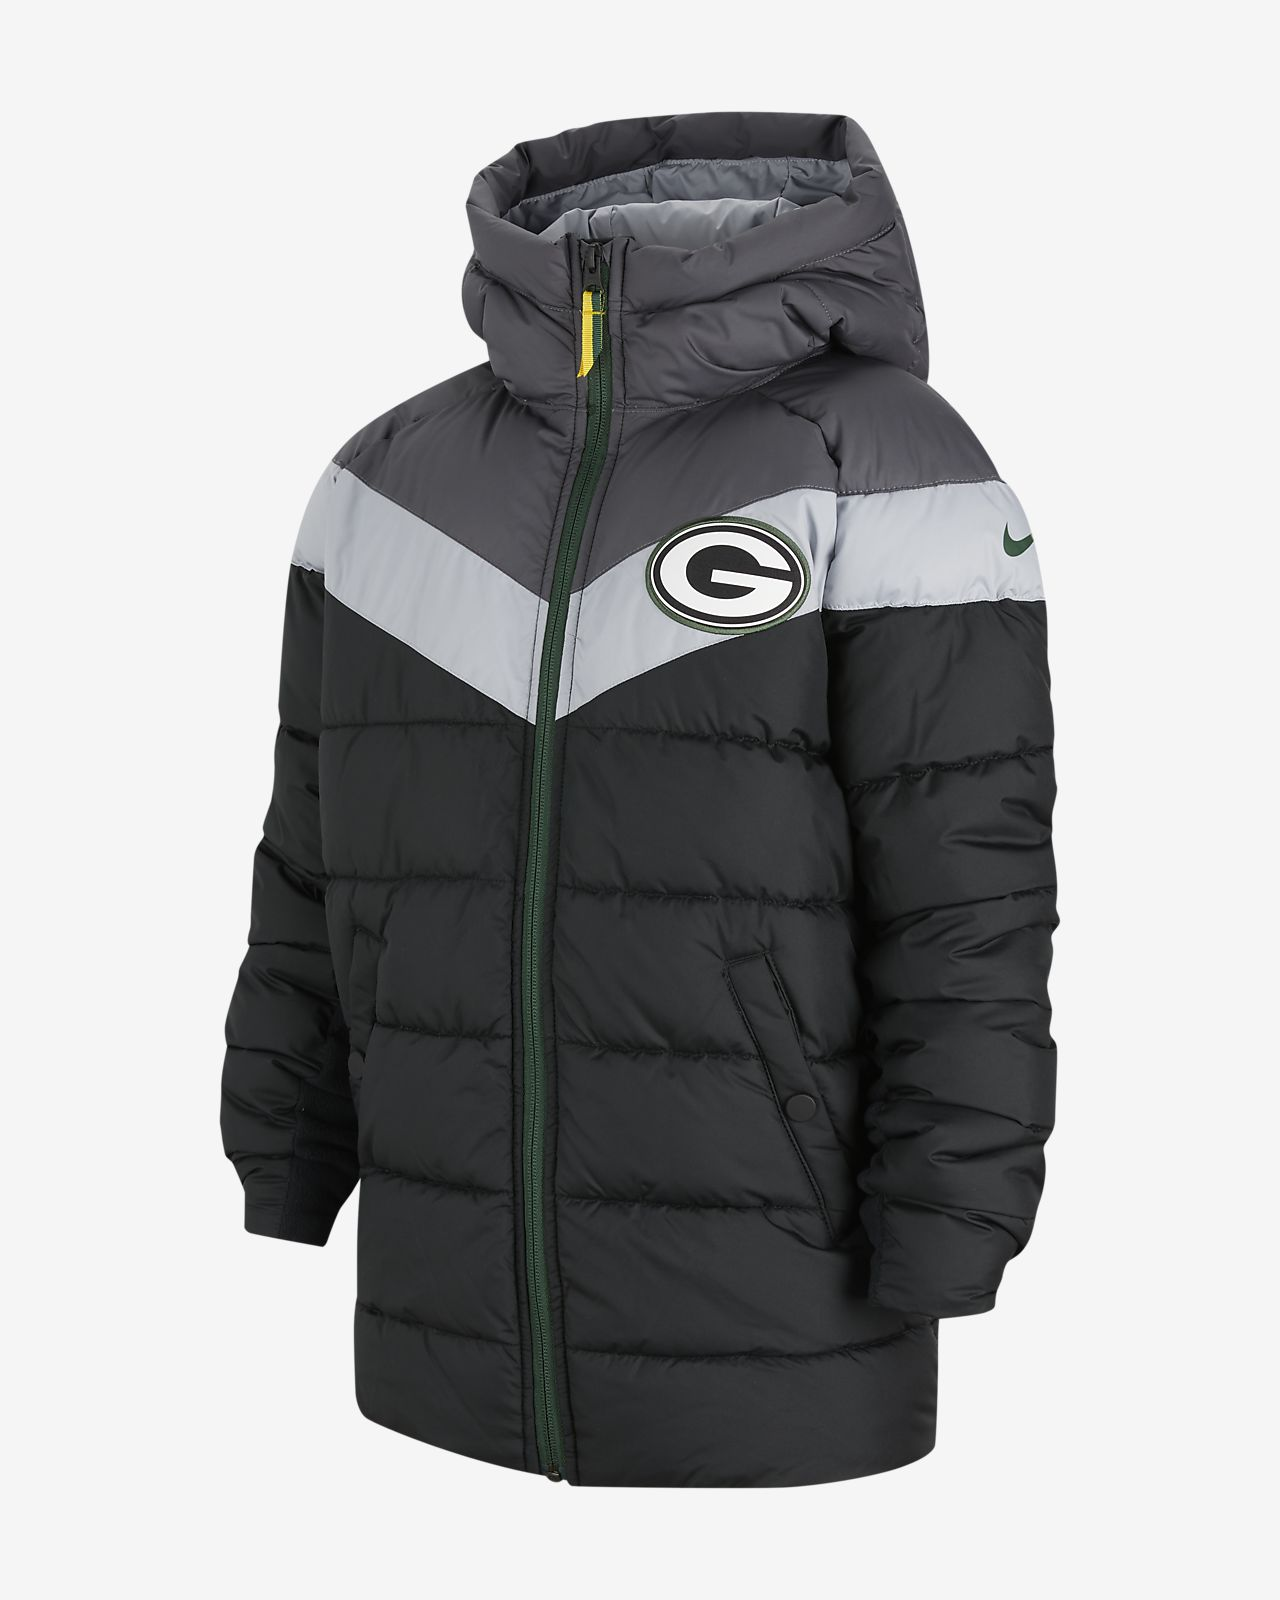 Offizielle NFL Nike Jacken, Nike Winter Coats Sale